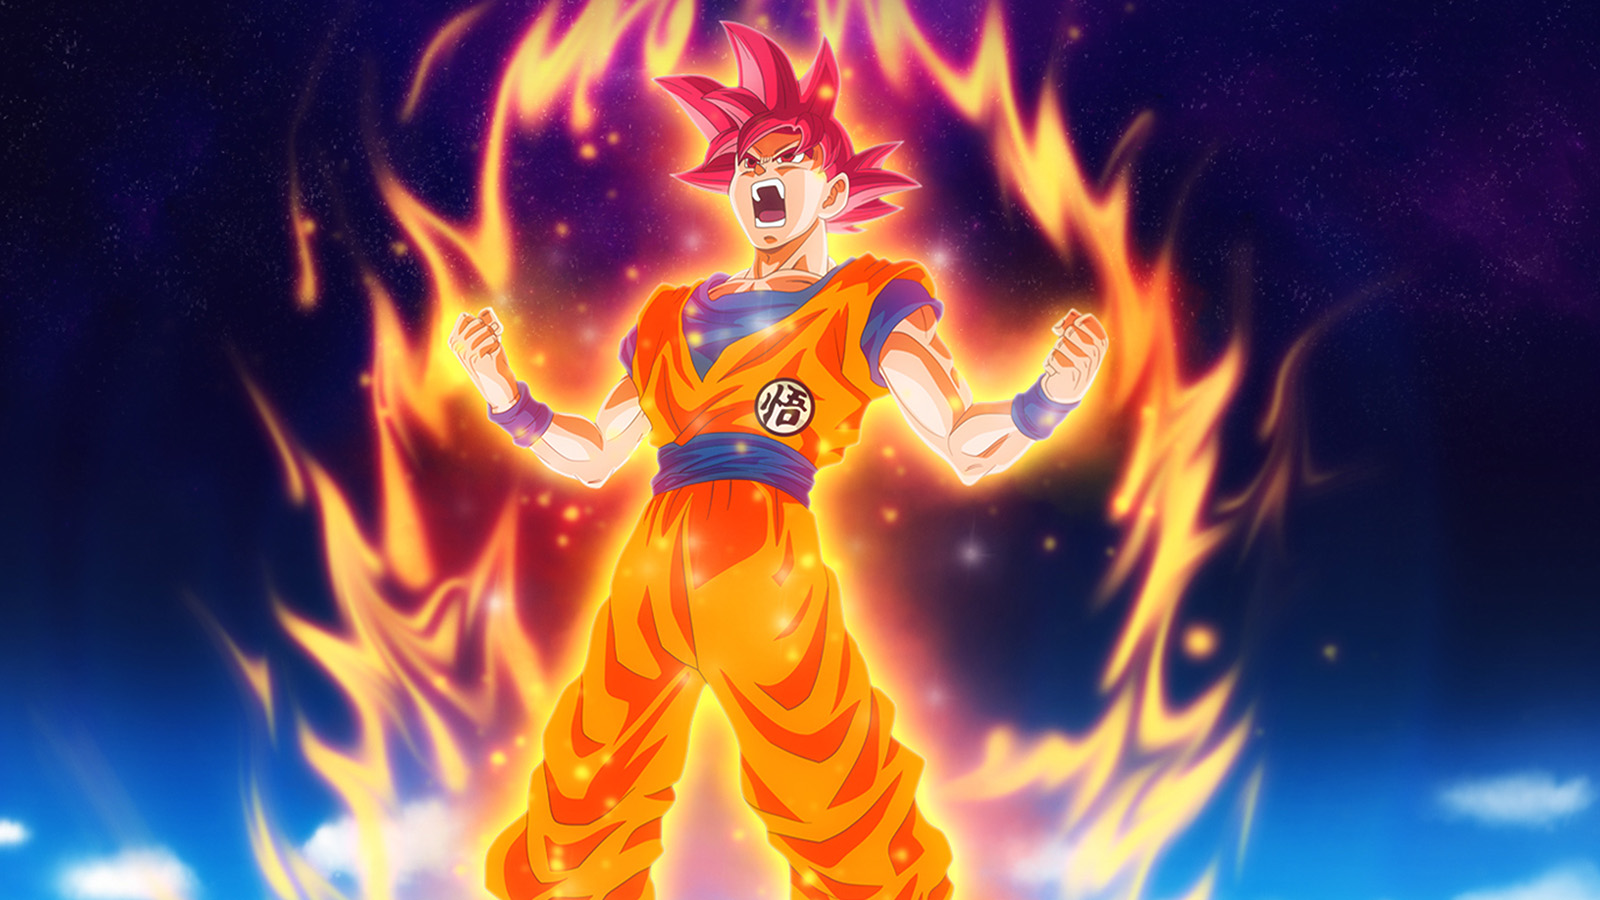 be62-dragon-ball-fire-art-illustration-hero-anime-wallpaper